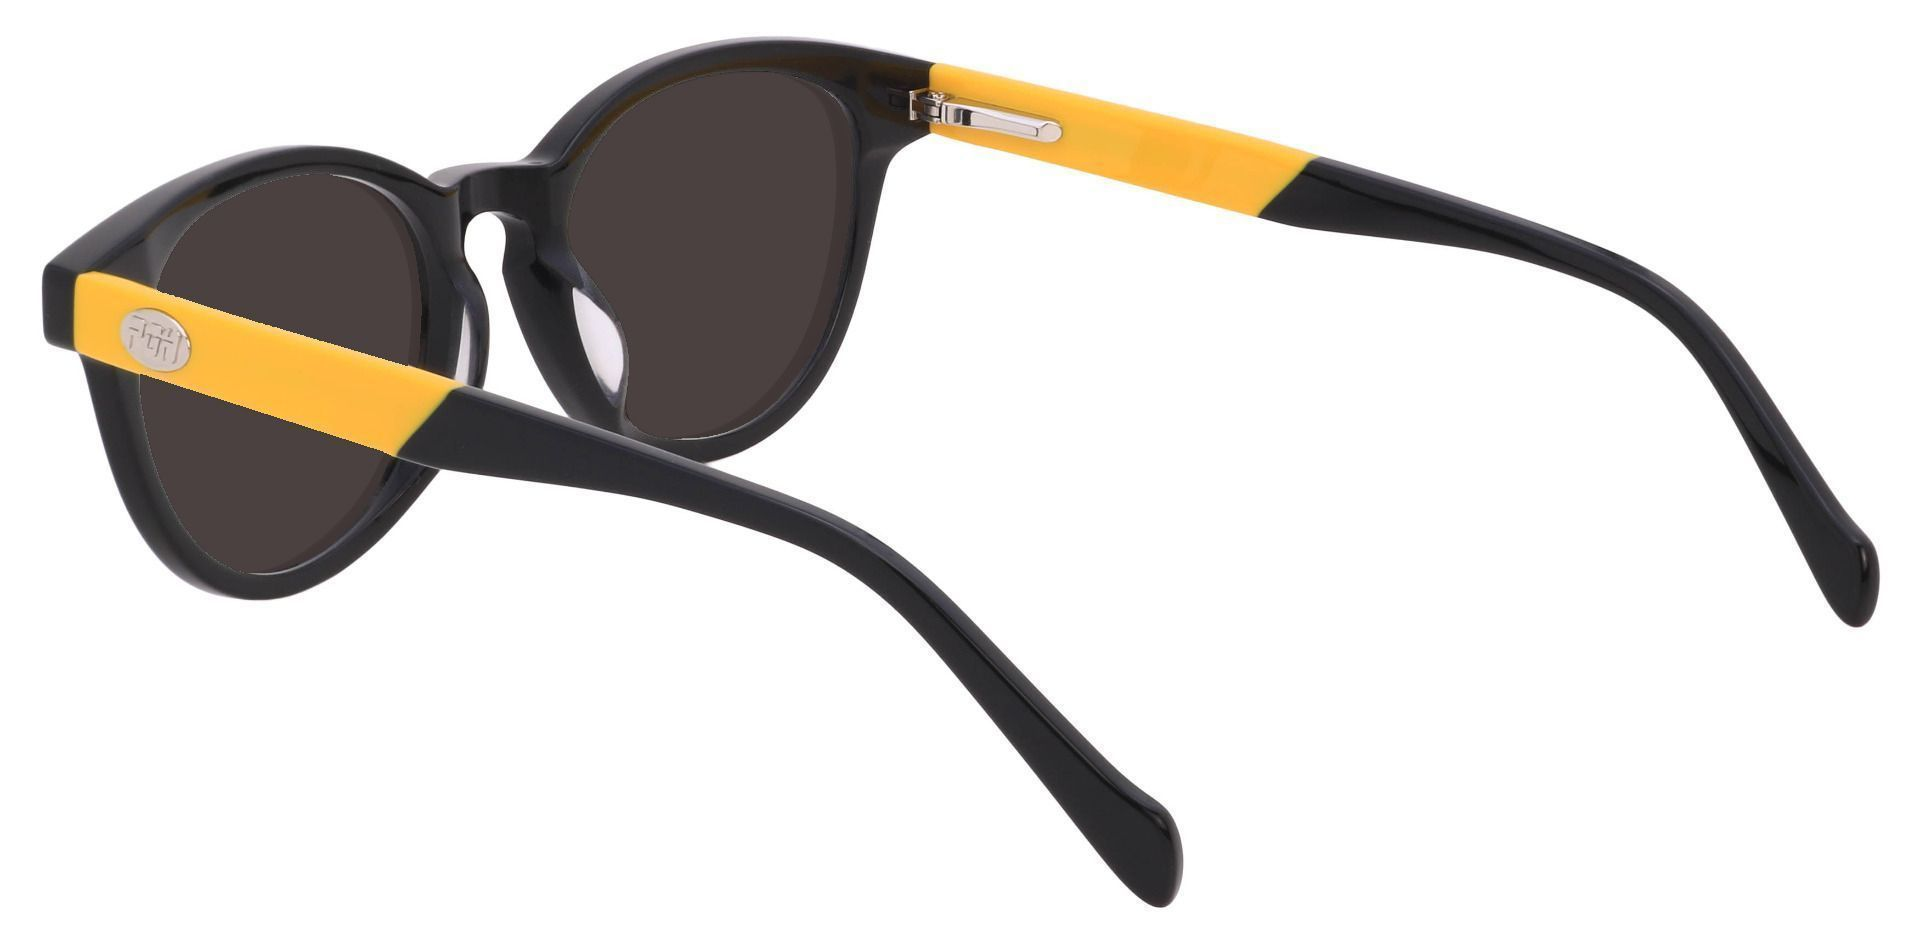 Oakland Oval Prescription Sunglasses - Black Frame With Gray Lenses